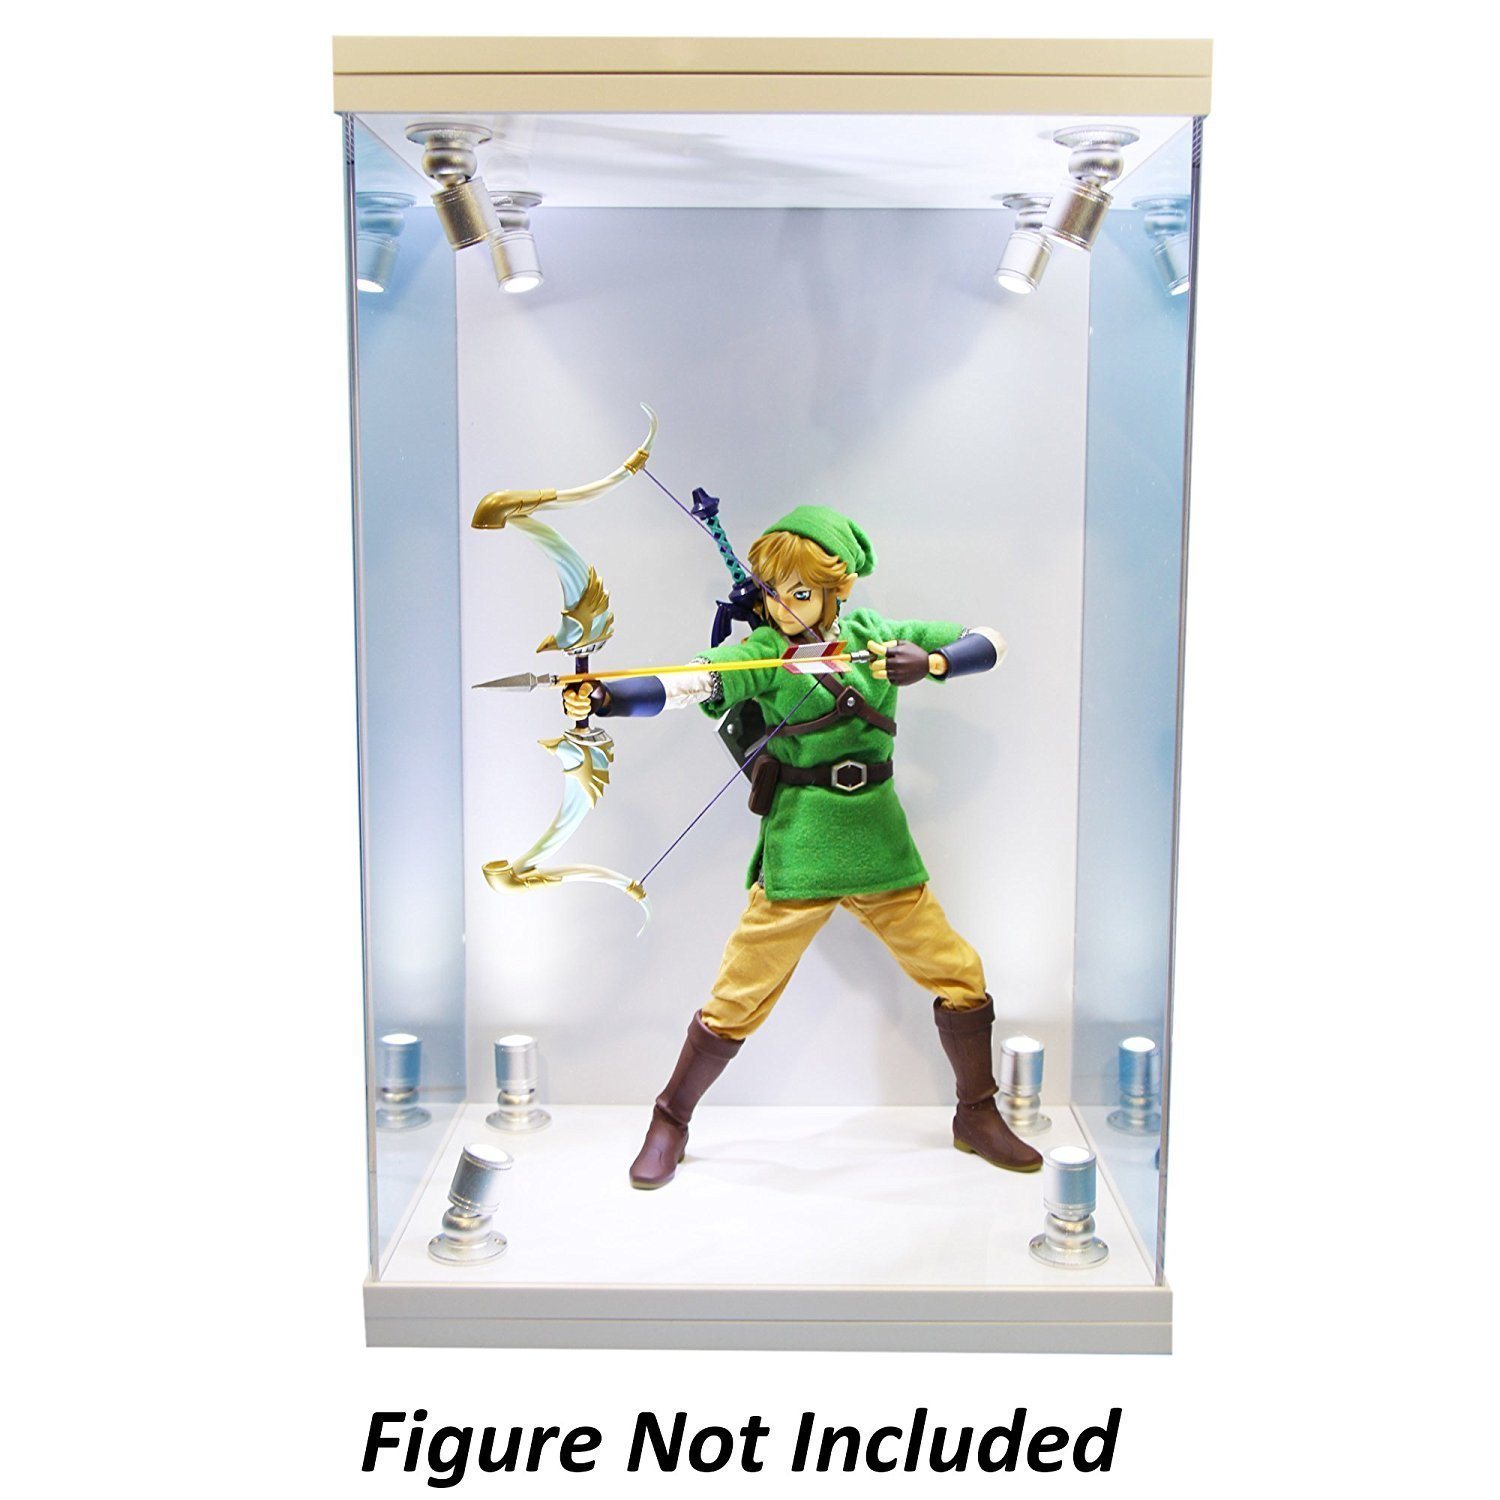 ELITE E-01 GLOSS WHITE 8 LED LIGHTED FIGURE STATUE DOLL DISPLAY CASE FOR 1/6 SCALE FIGURES AND MOST FIGURES UP TO 16'' INCHES TALL